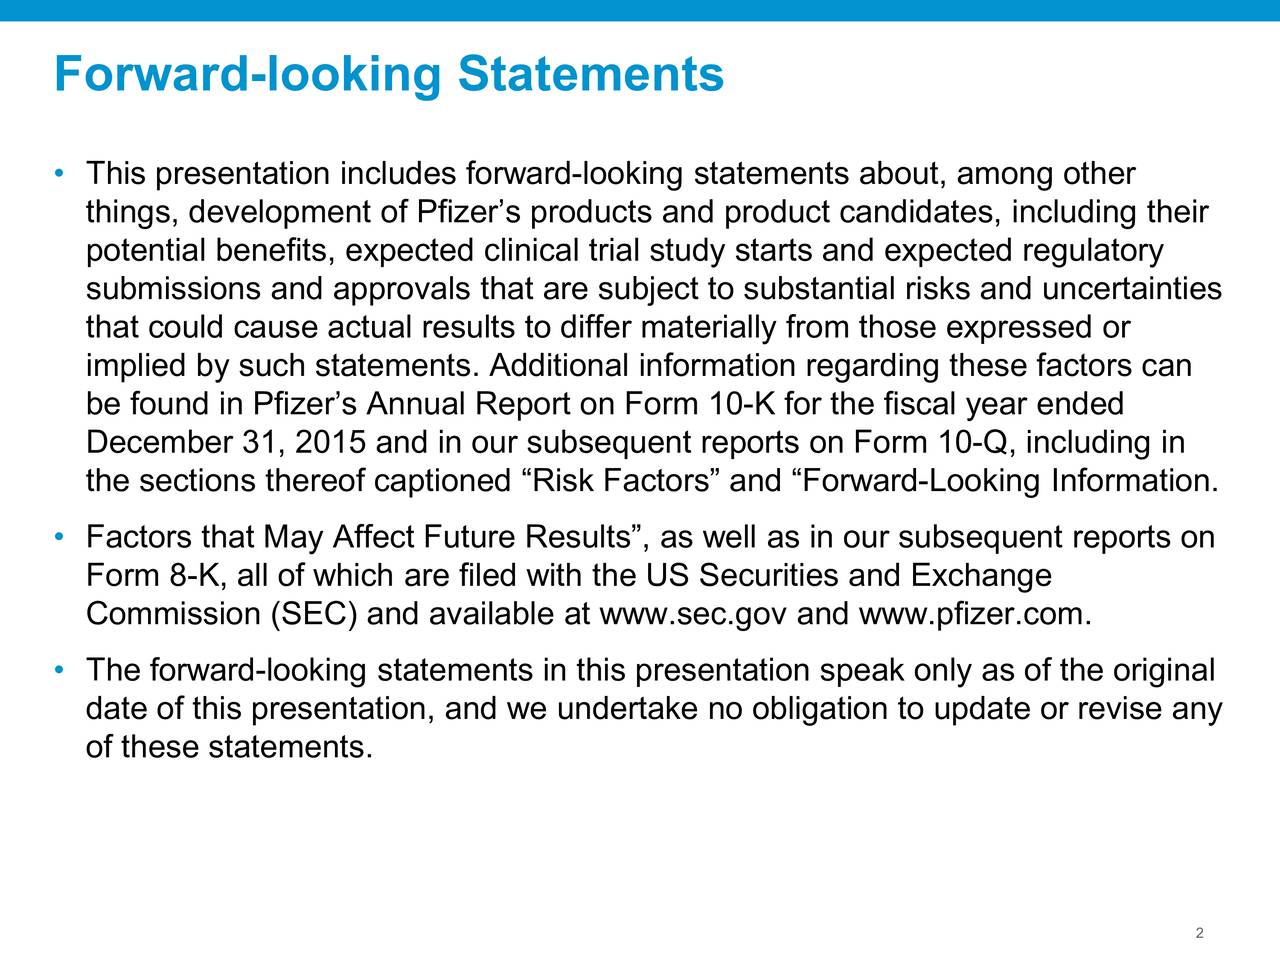 This presentation includes forward-looking statements about, among other things, development of Pfizers products and product candidates, including their potential benefits, expected clinical trial study starts and expected regulatory submissions and approvals that are subject to substantial risks and uncertainties that could cause actual results to differ materially from those expressed or implied by such statements. Additional information regarding these factors can be found in Pfizers Annual Report on Form 10-K for the fiscal year ended December 31, 2015 and in our subsequent reports on Form 10-Q, including in the sections thereof captioned Risk Factors and Forward-Looking Information. Factors that May Affect Future Results, as well as in our subsequent reports on Form 8-K, all of which are filed with the US Securities and Exchange Commission (SEC) and available at www.sec.gov and www.pfizer.com. The forward-looking statements in this presentation speak only as of the original date of this presentation, and we undertake no obligation to update or revise any of these statements. 2